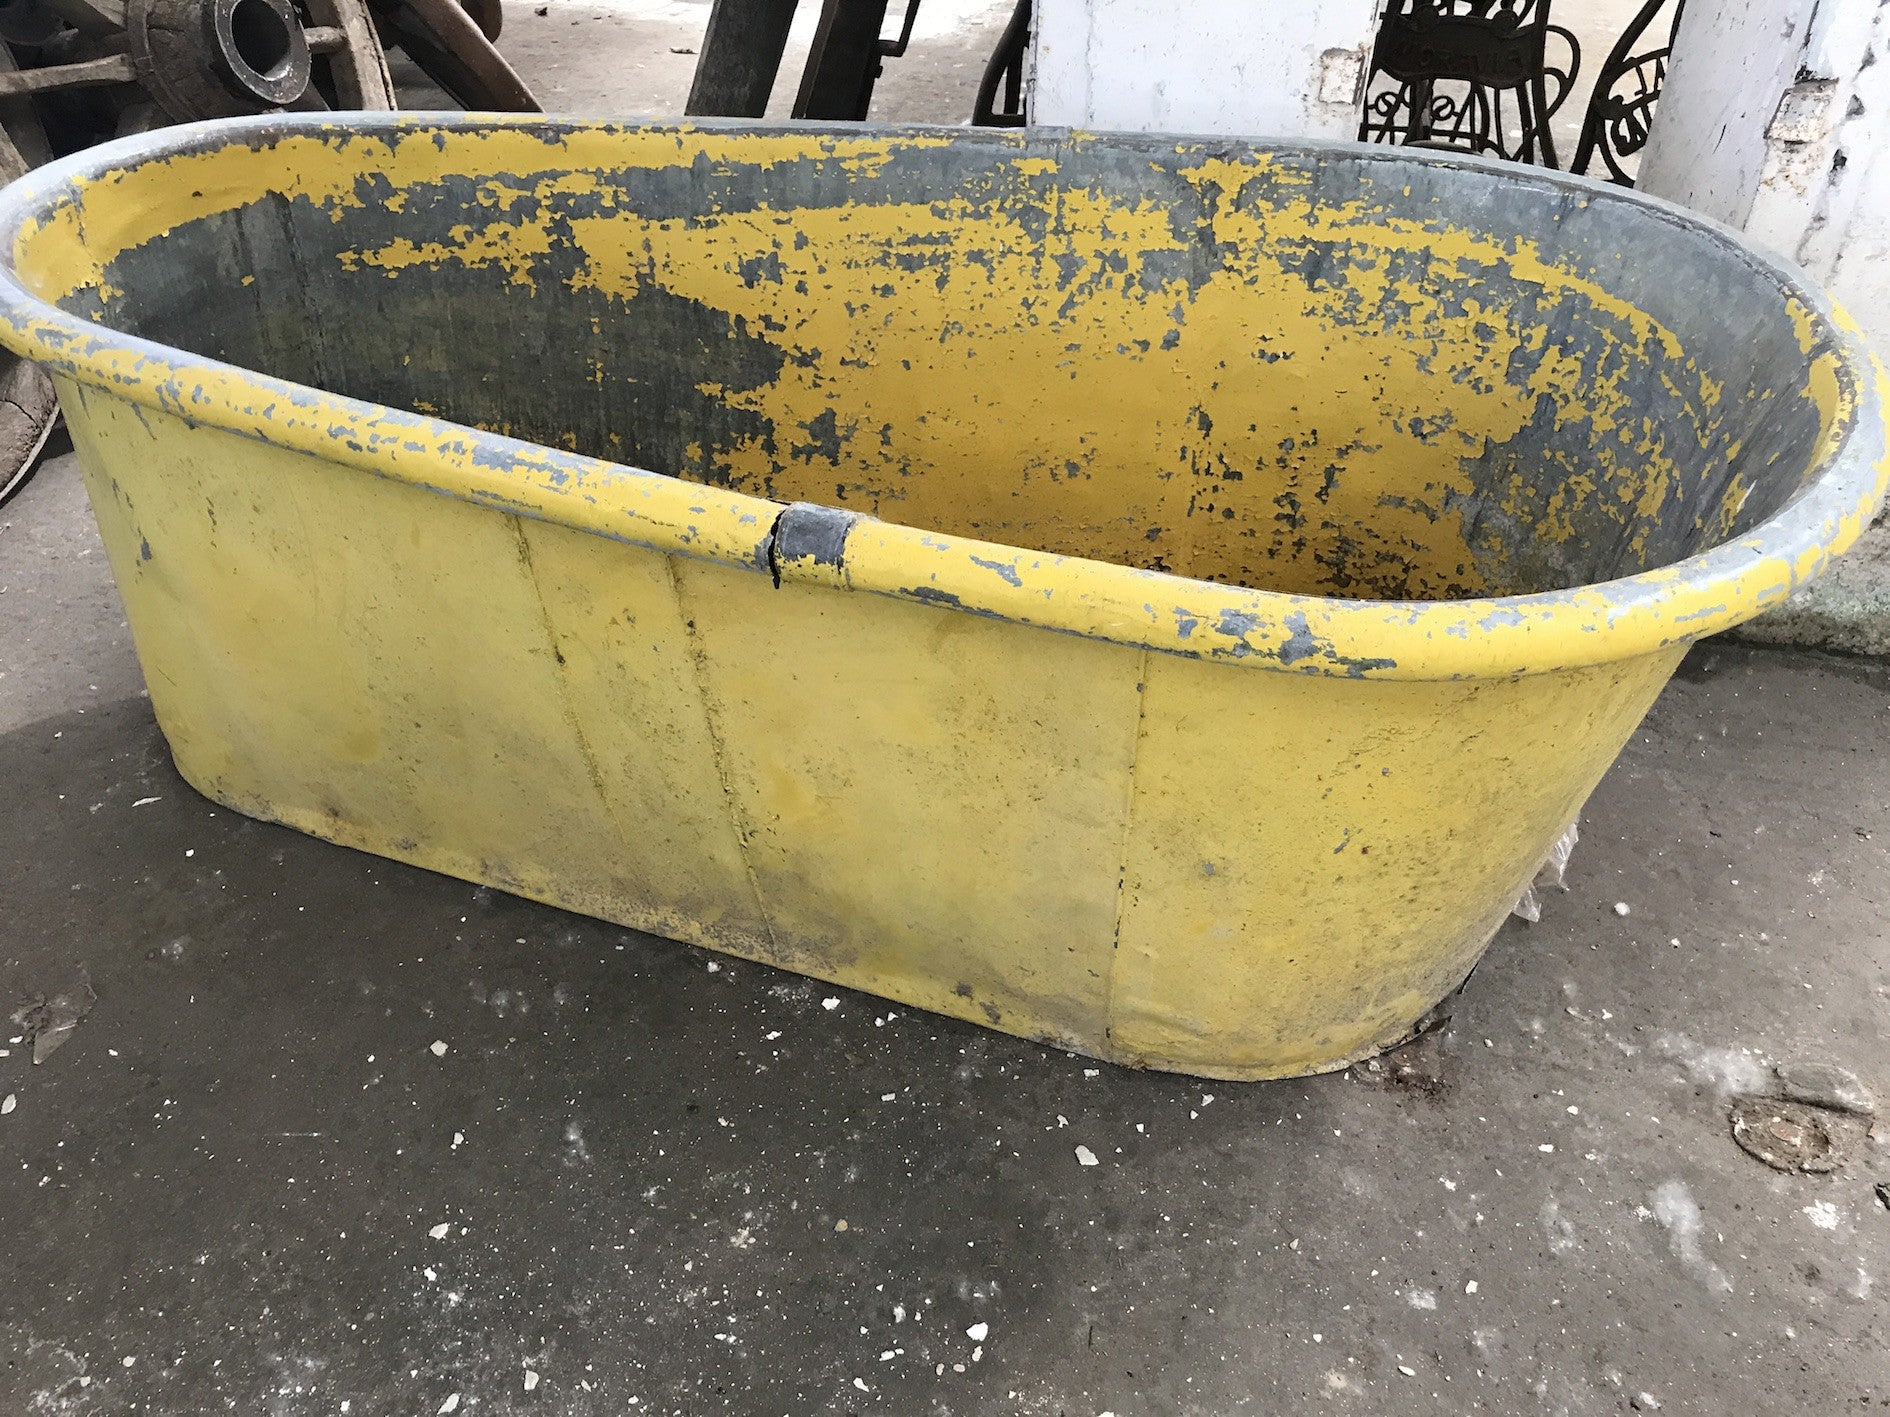 Vintage industrial French galvanized bath tub #1734